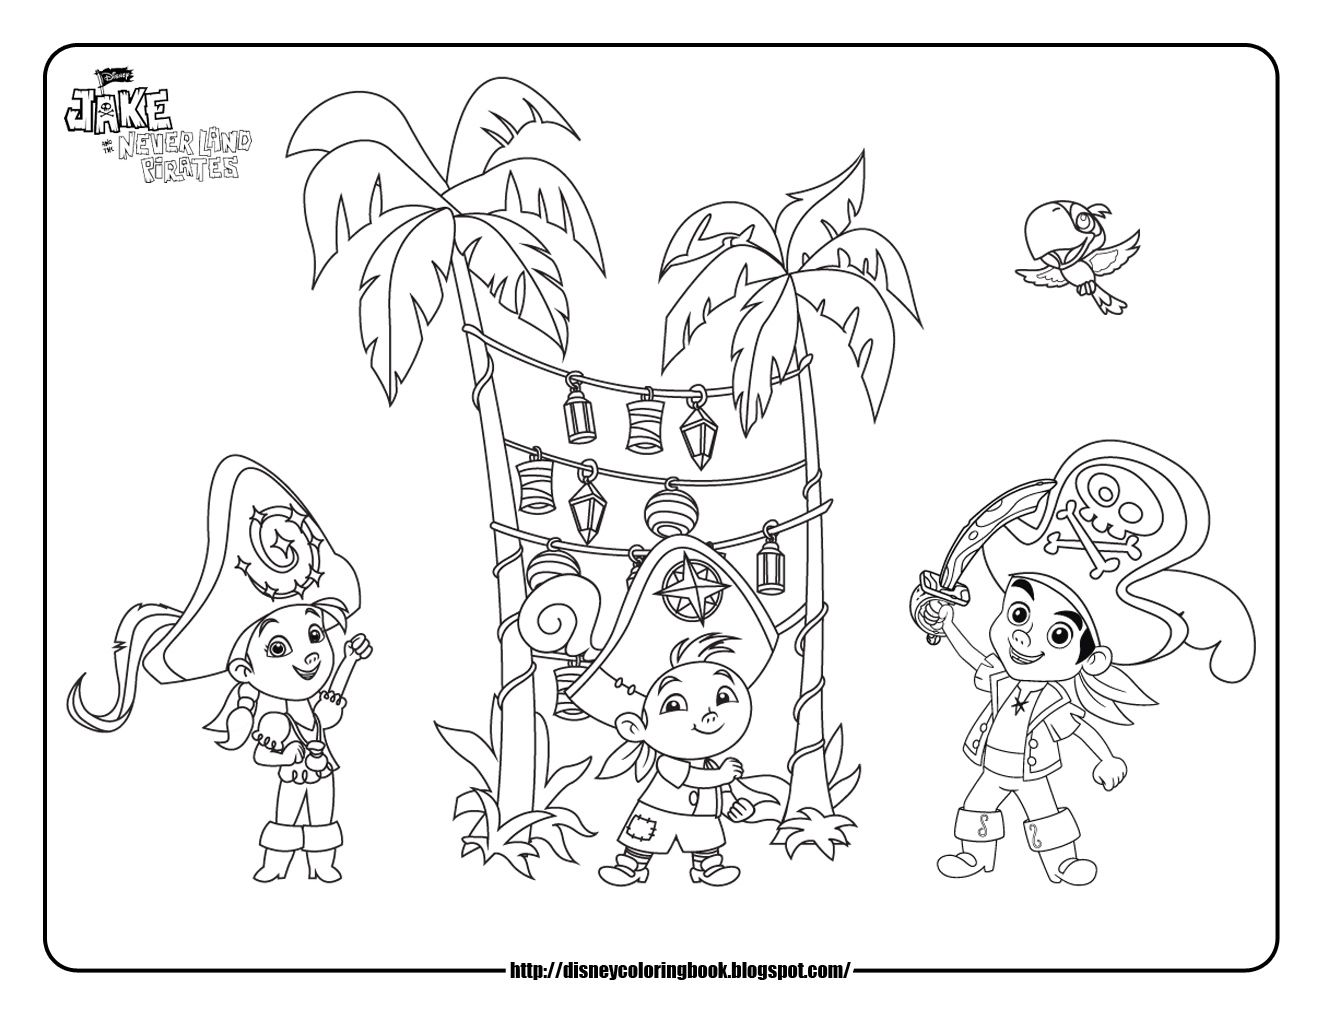 jake and the neverland pirates coloring pages Lukes 3rd